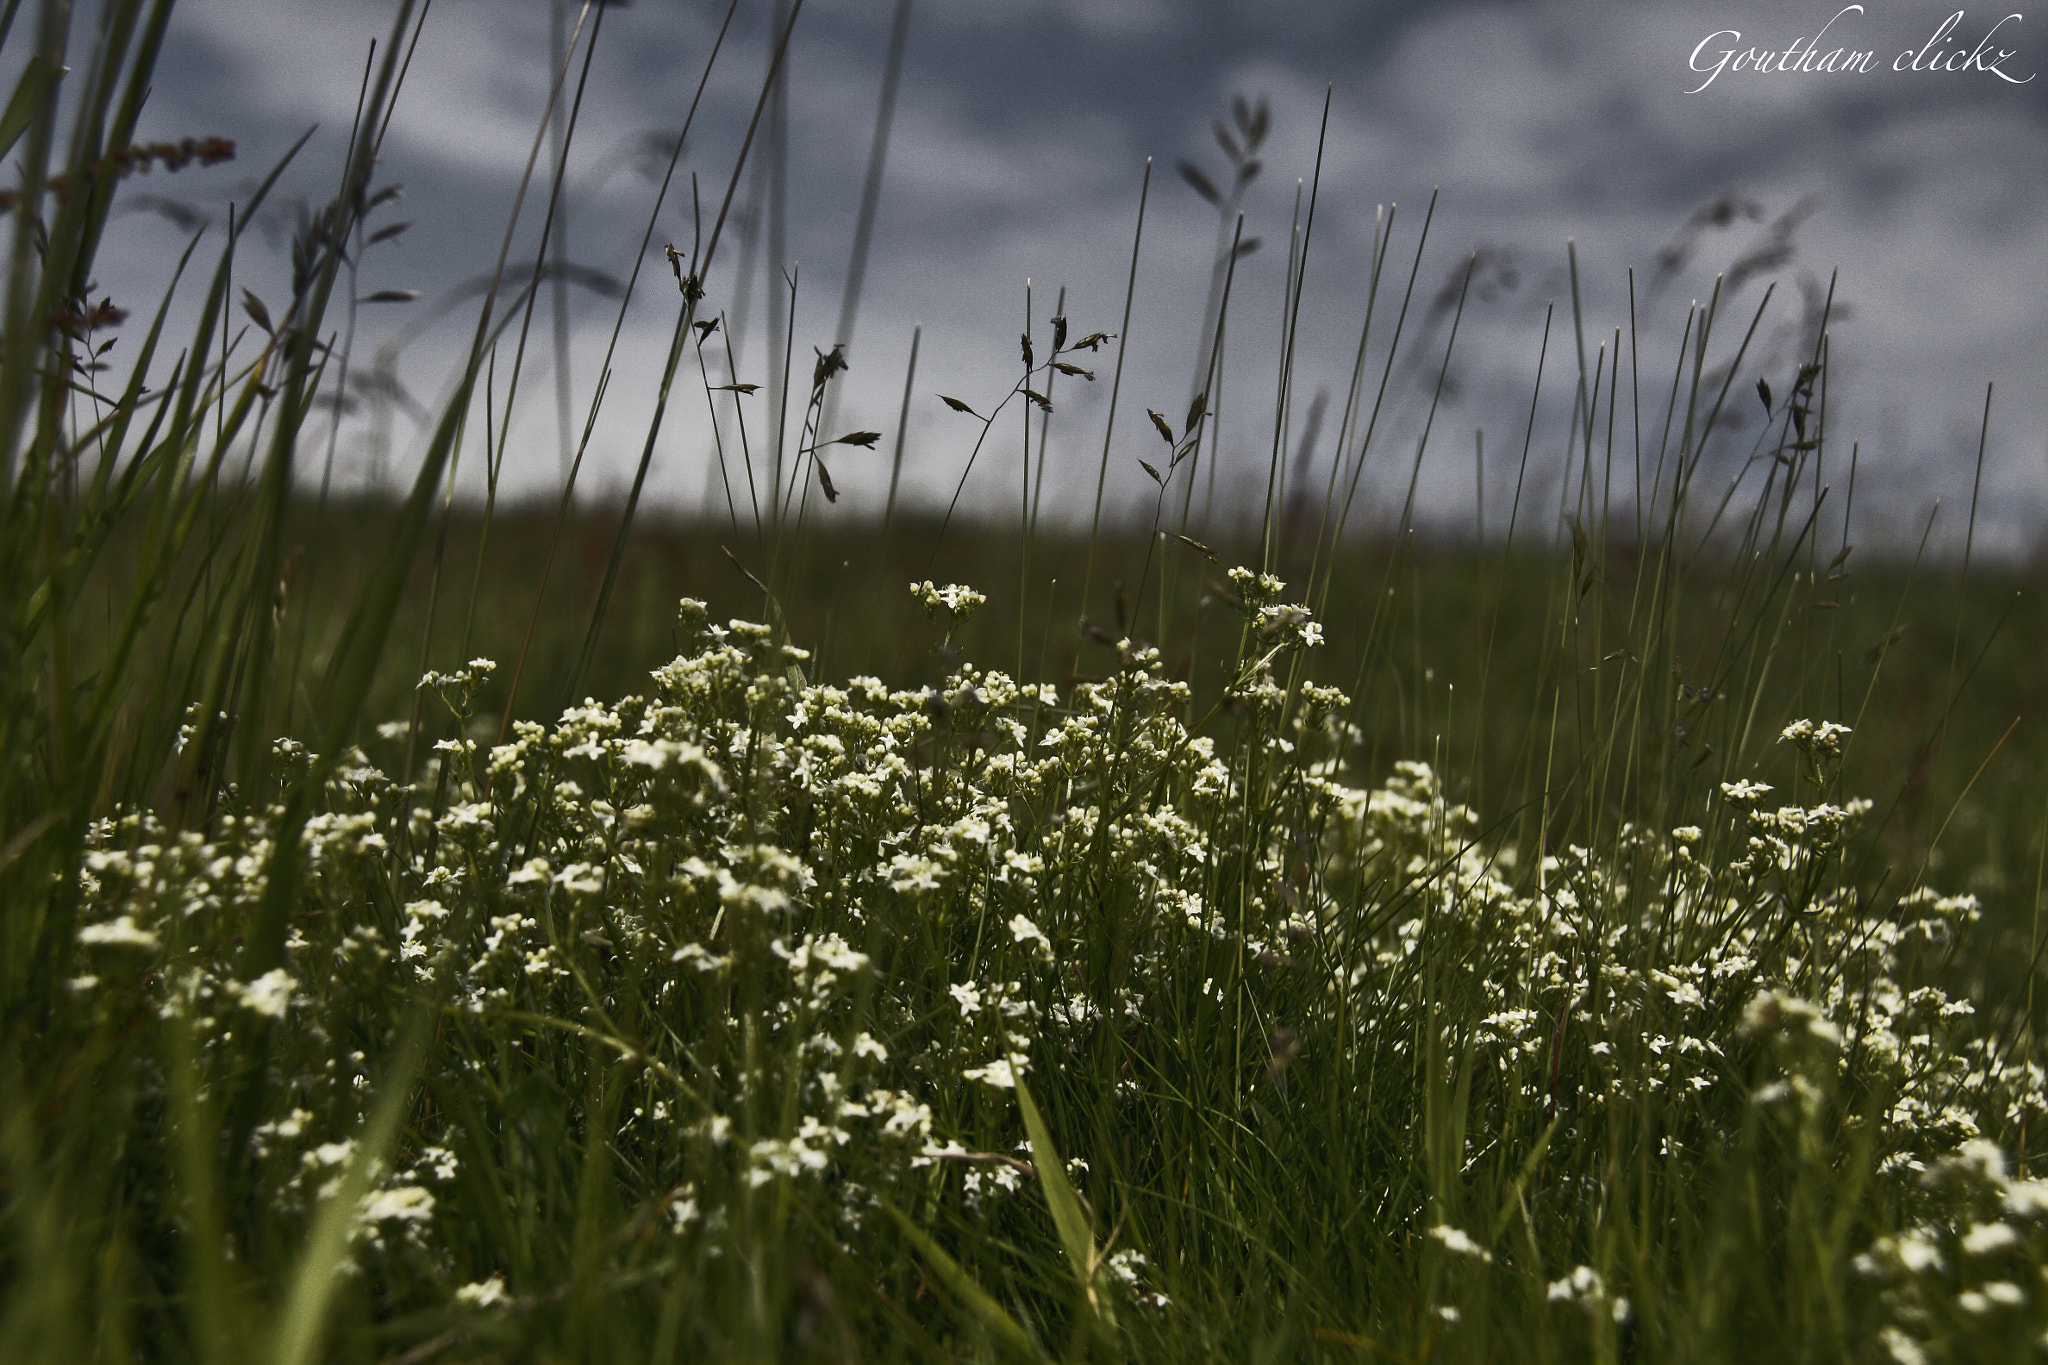 Photograph Tiny flowers under d dark clouds by Goutham Raj on 500px